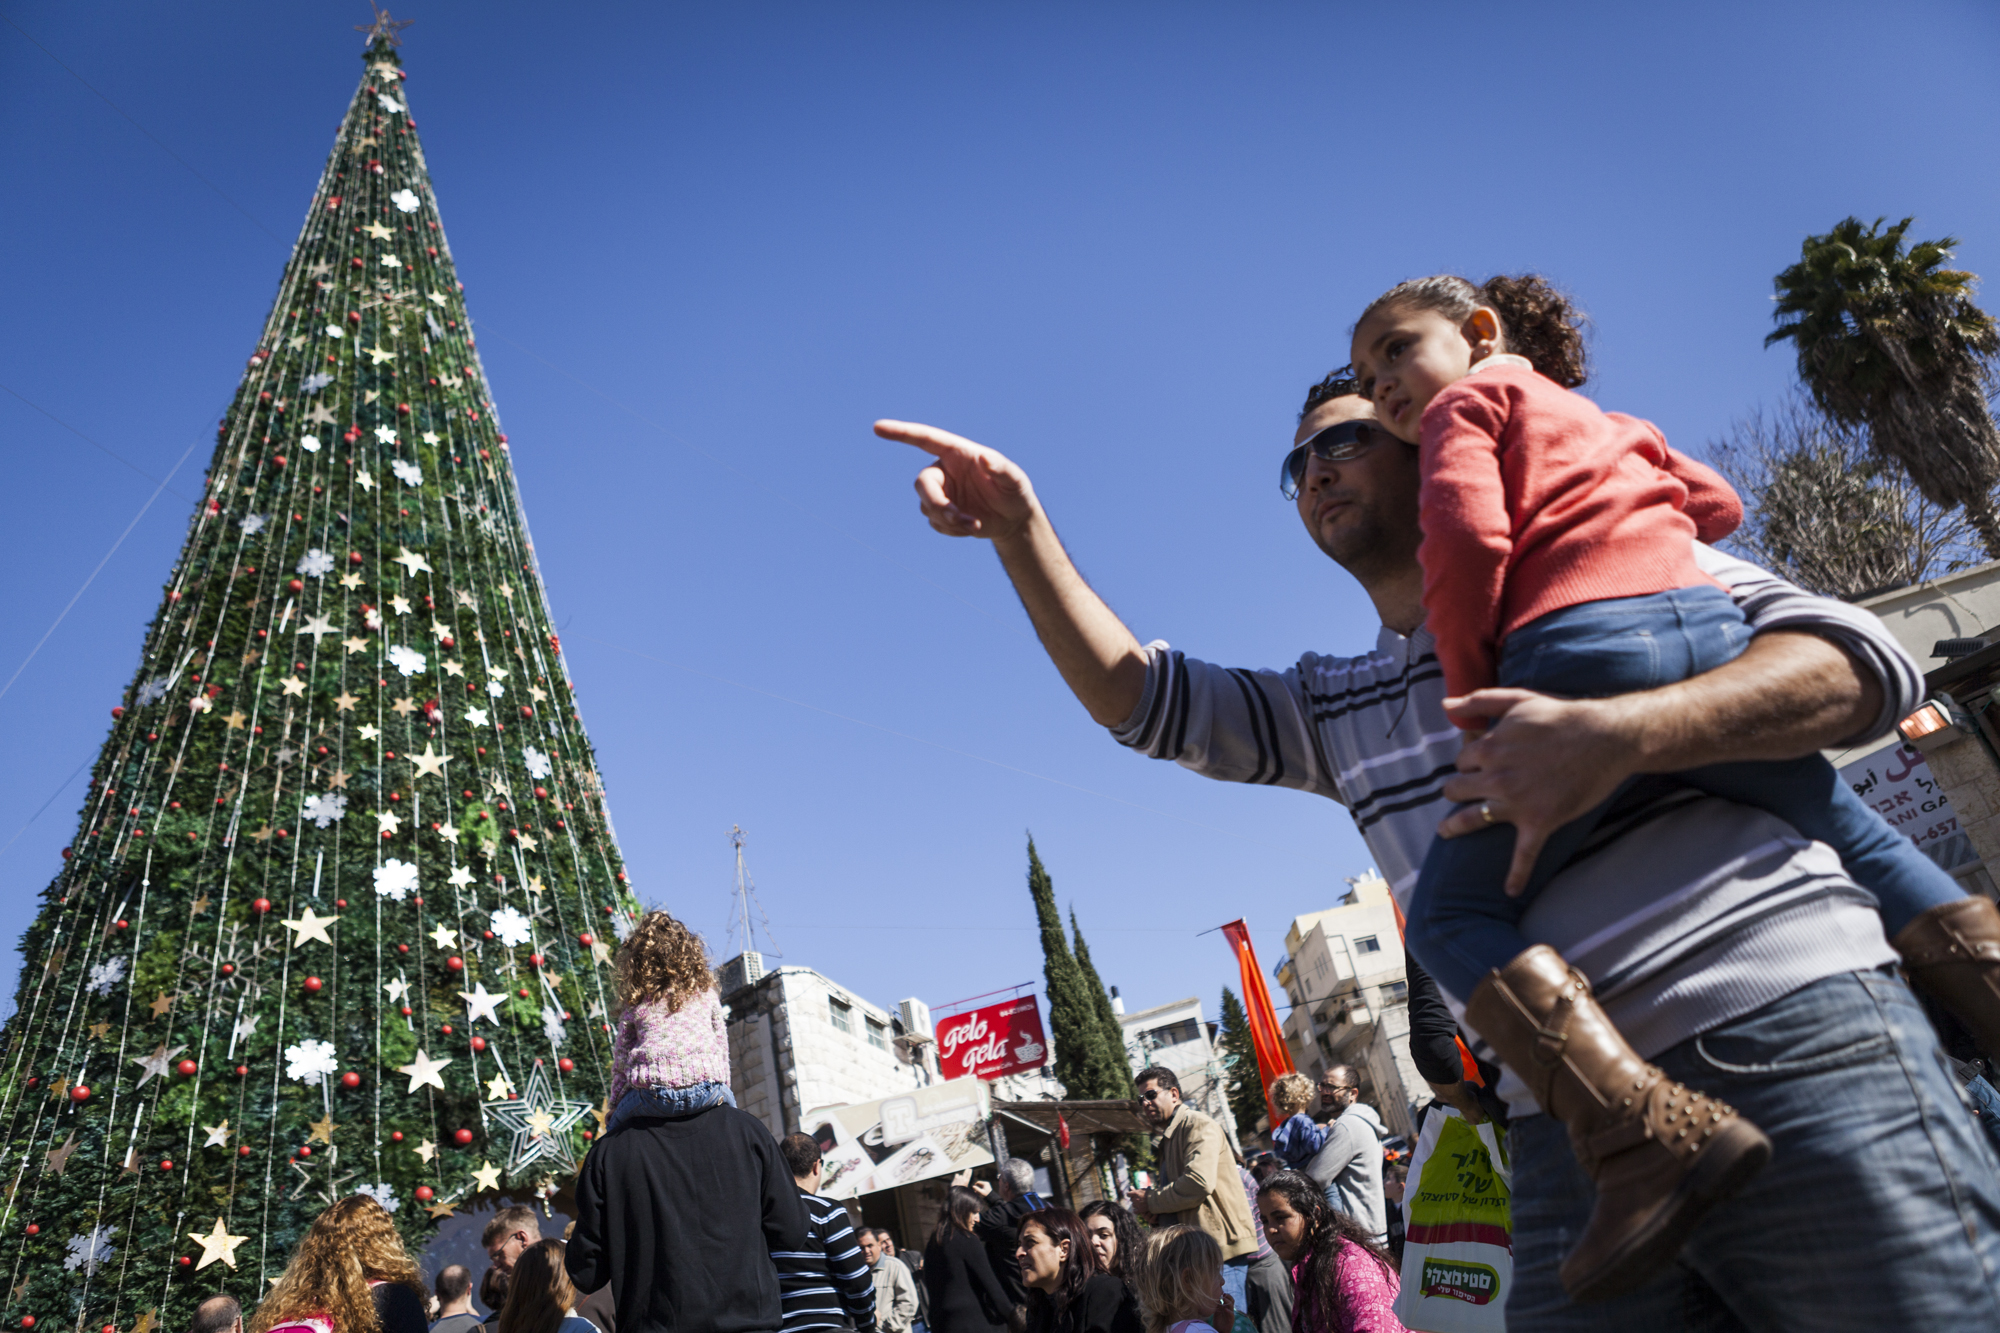 Christmas in the Galilee town of Nazareth. Photo by Itay CohenFLASH90